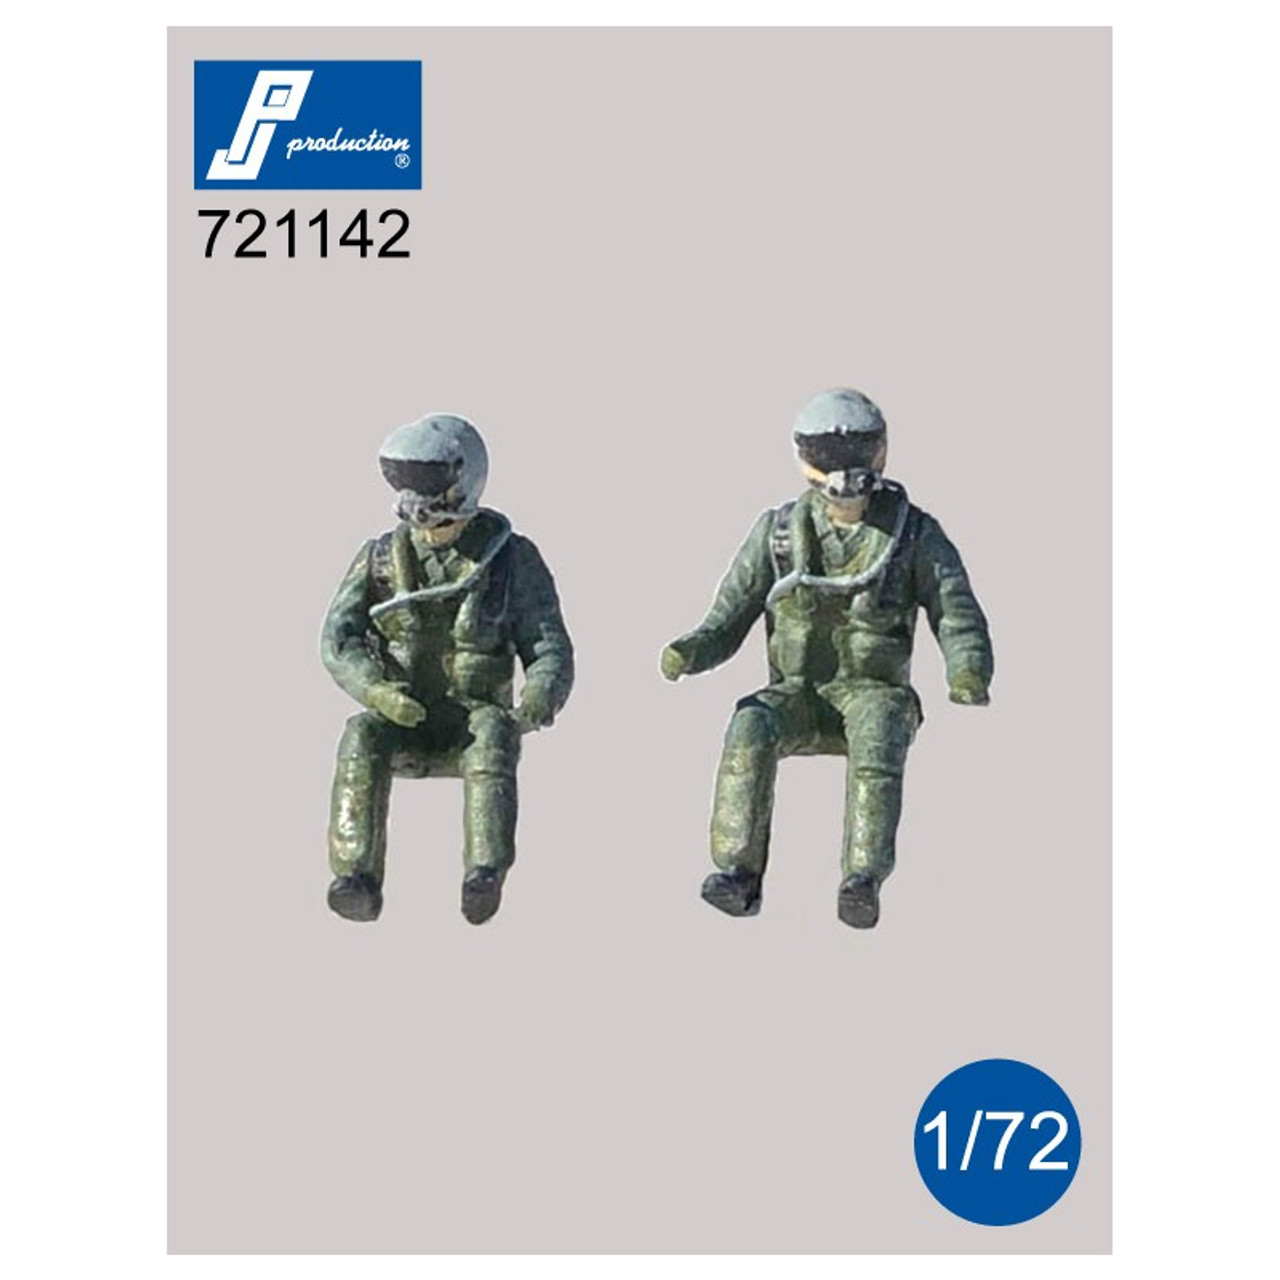 PJ Productions 2x US Pilots with JHMCS Helmet Seated in aircraft Figures 1:72 (PJP721142)